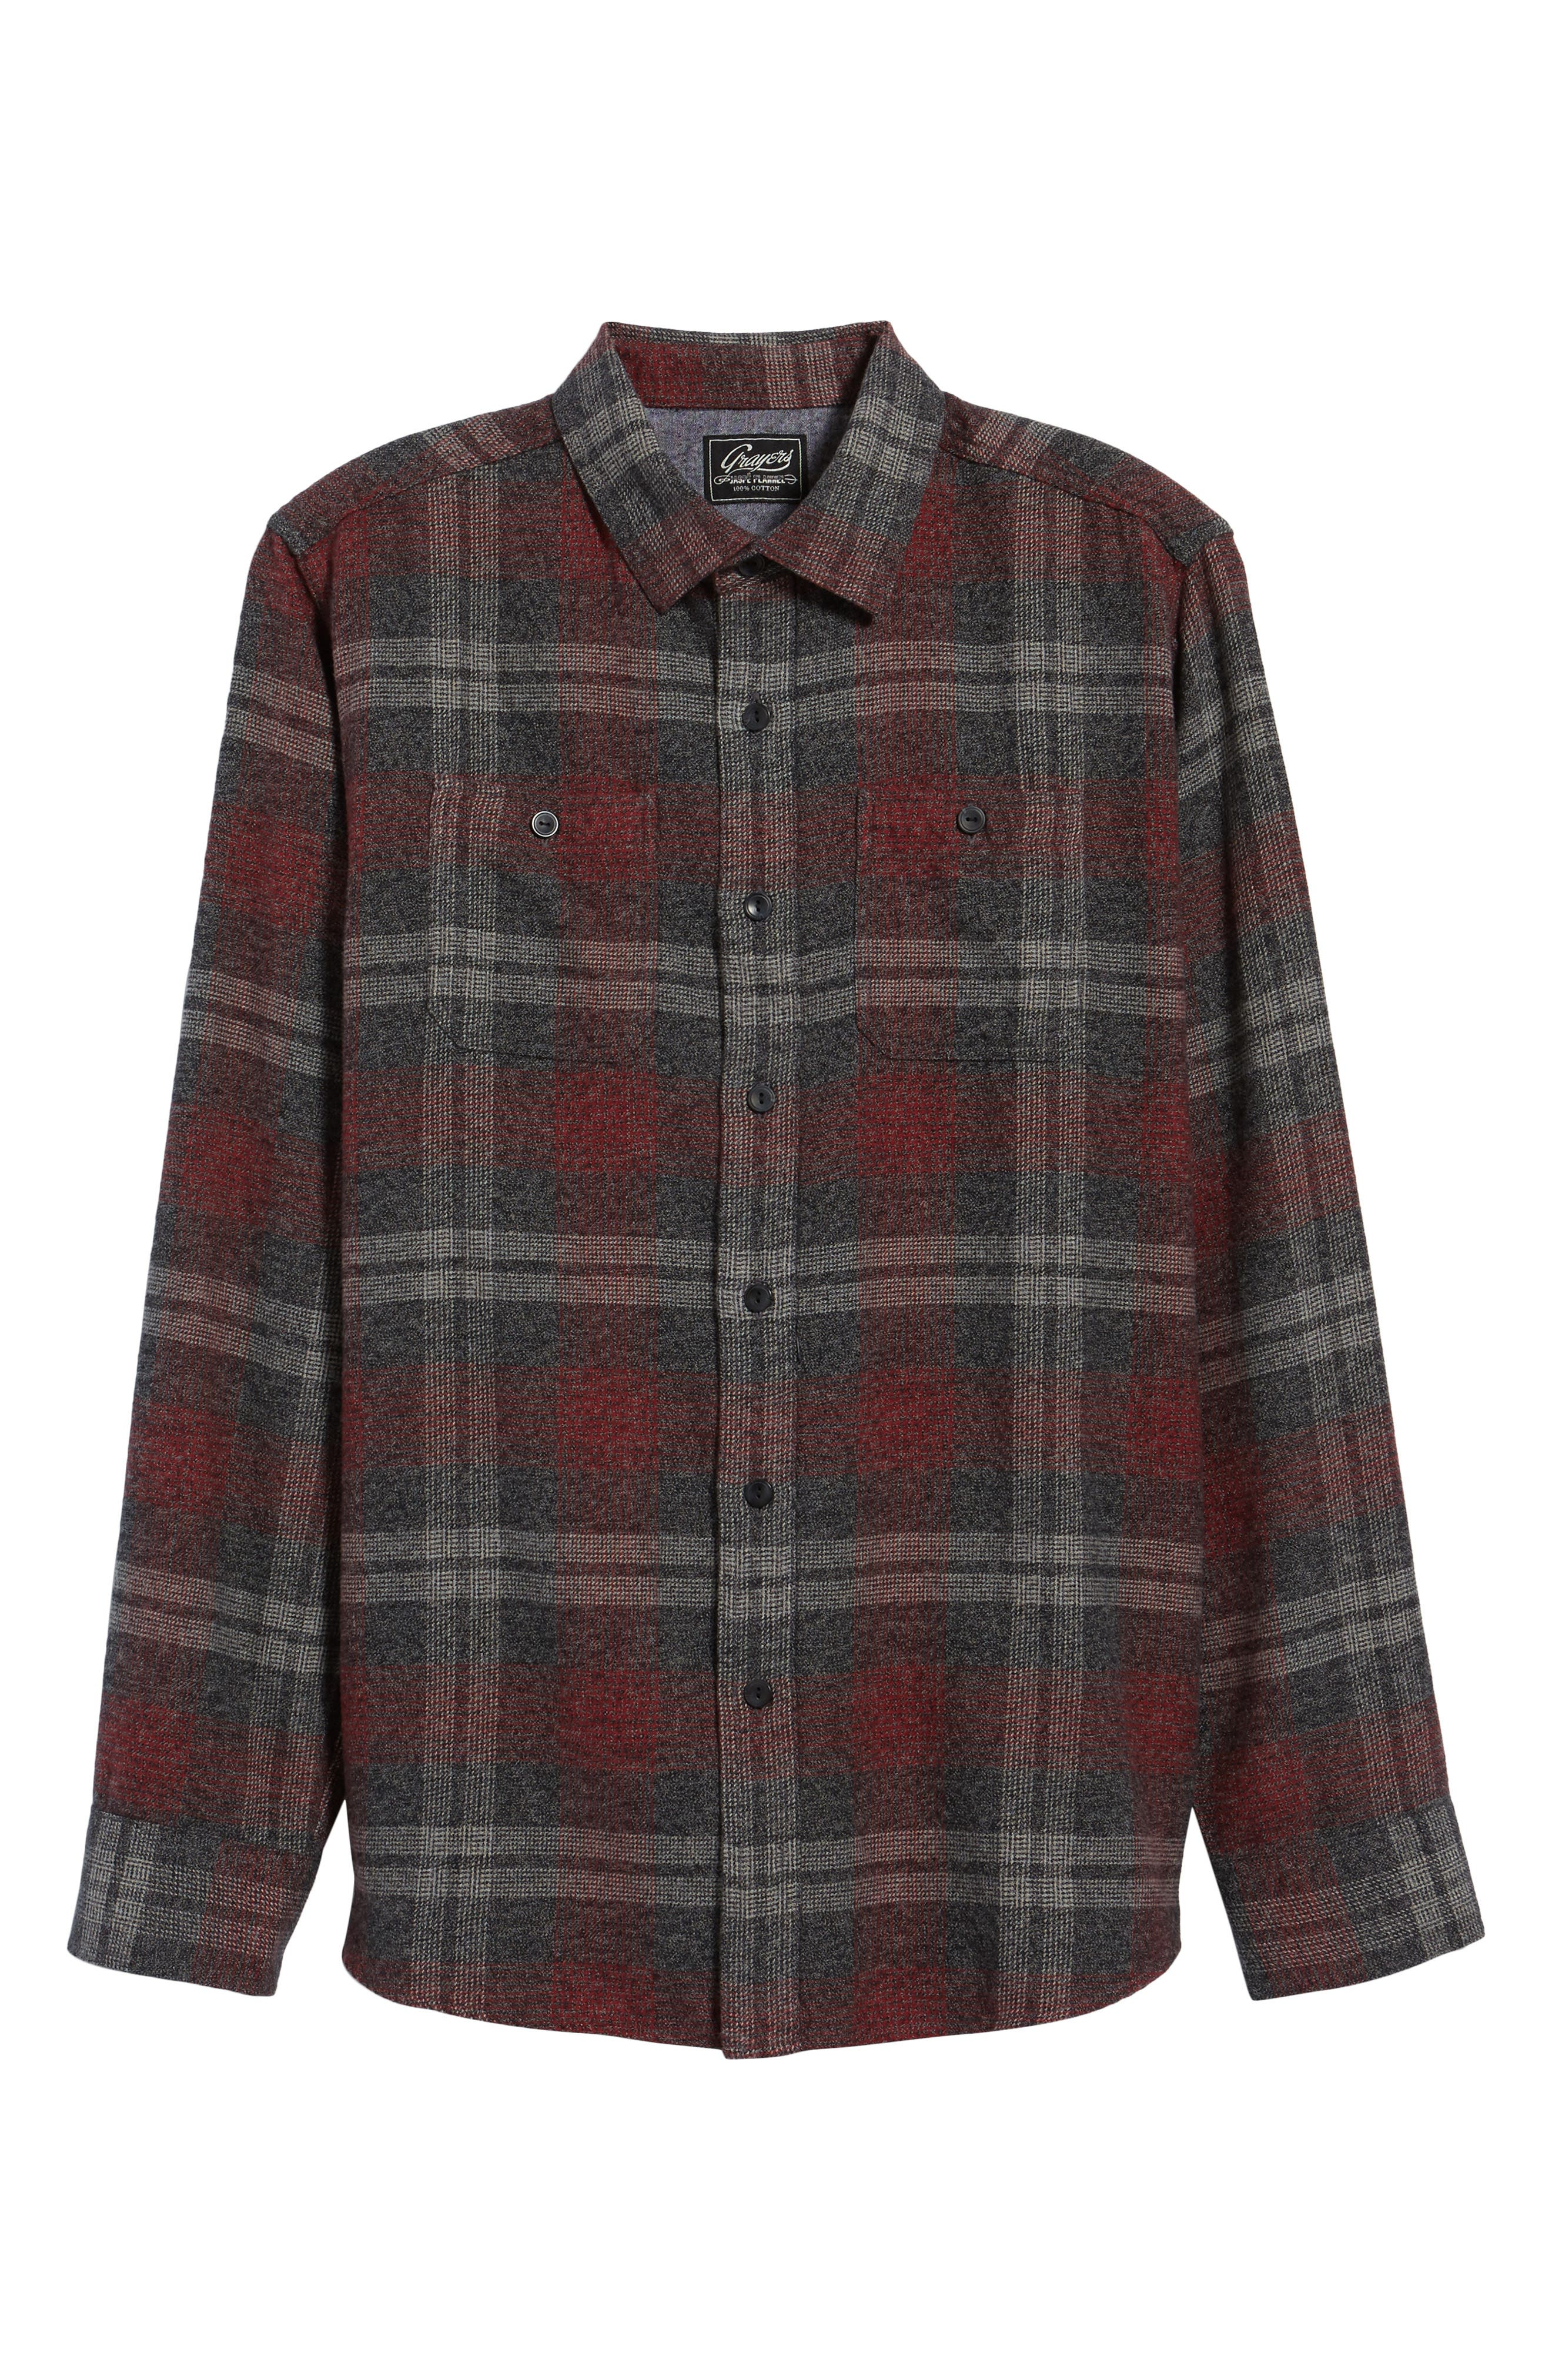 Marston Lux Plaid Flannel Shirt,                             Alternate thumbnail 6, color,                             642